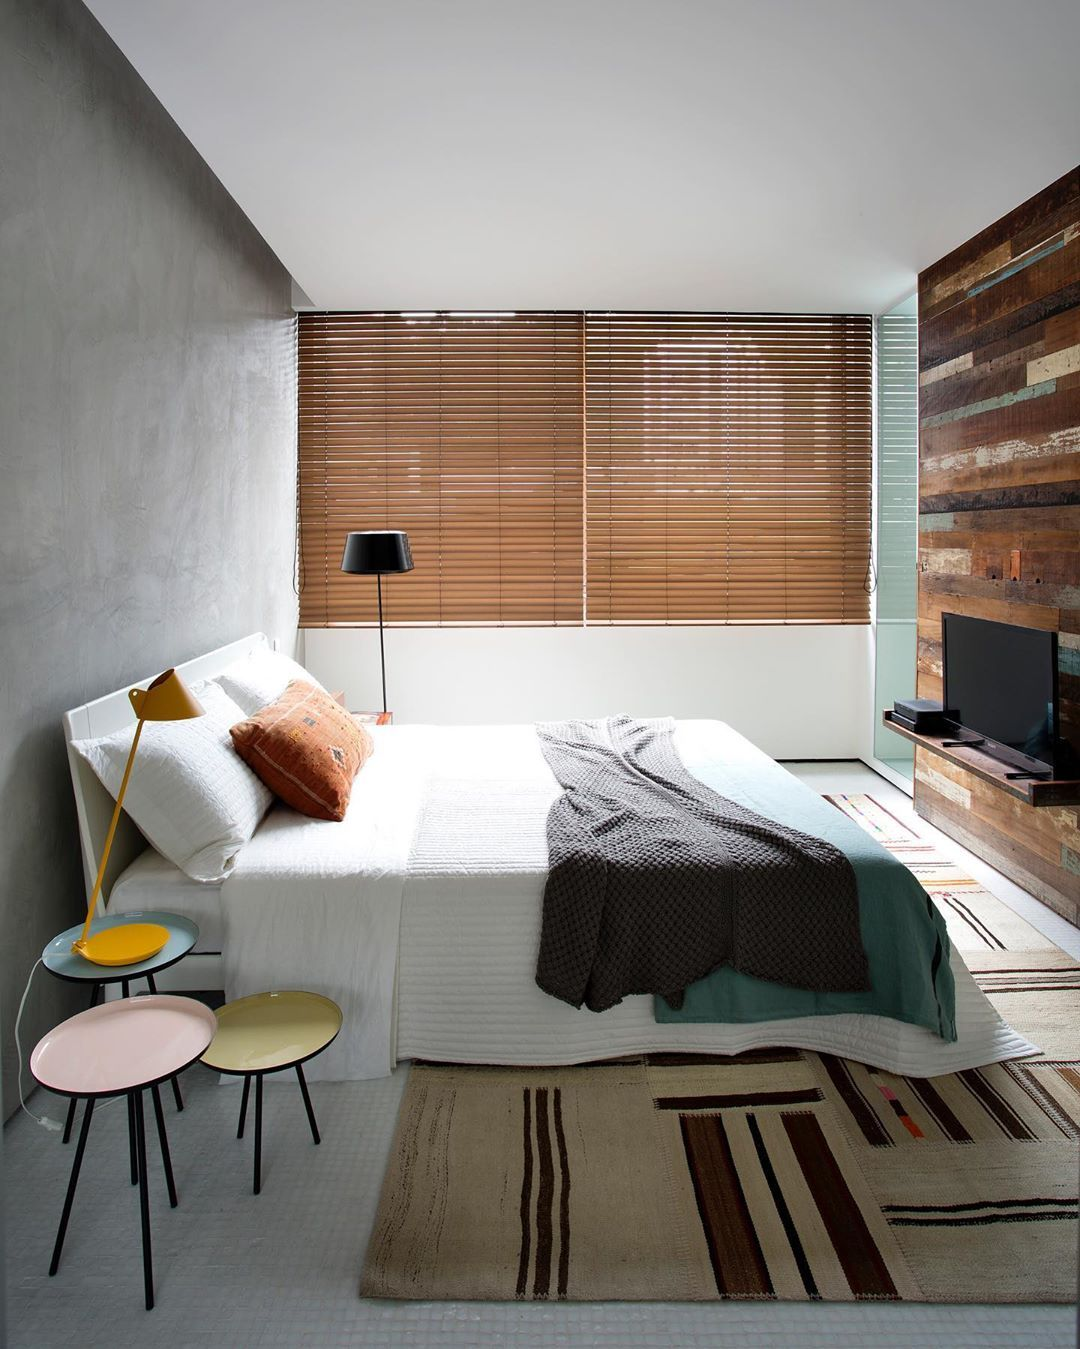 53+ Different Types of Beds, Frames, Styles That Will Go